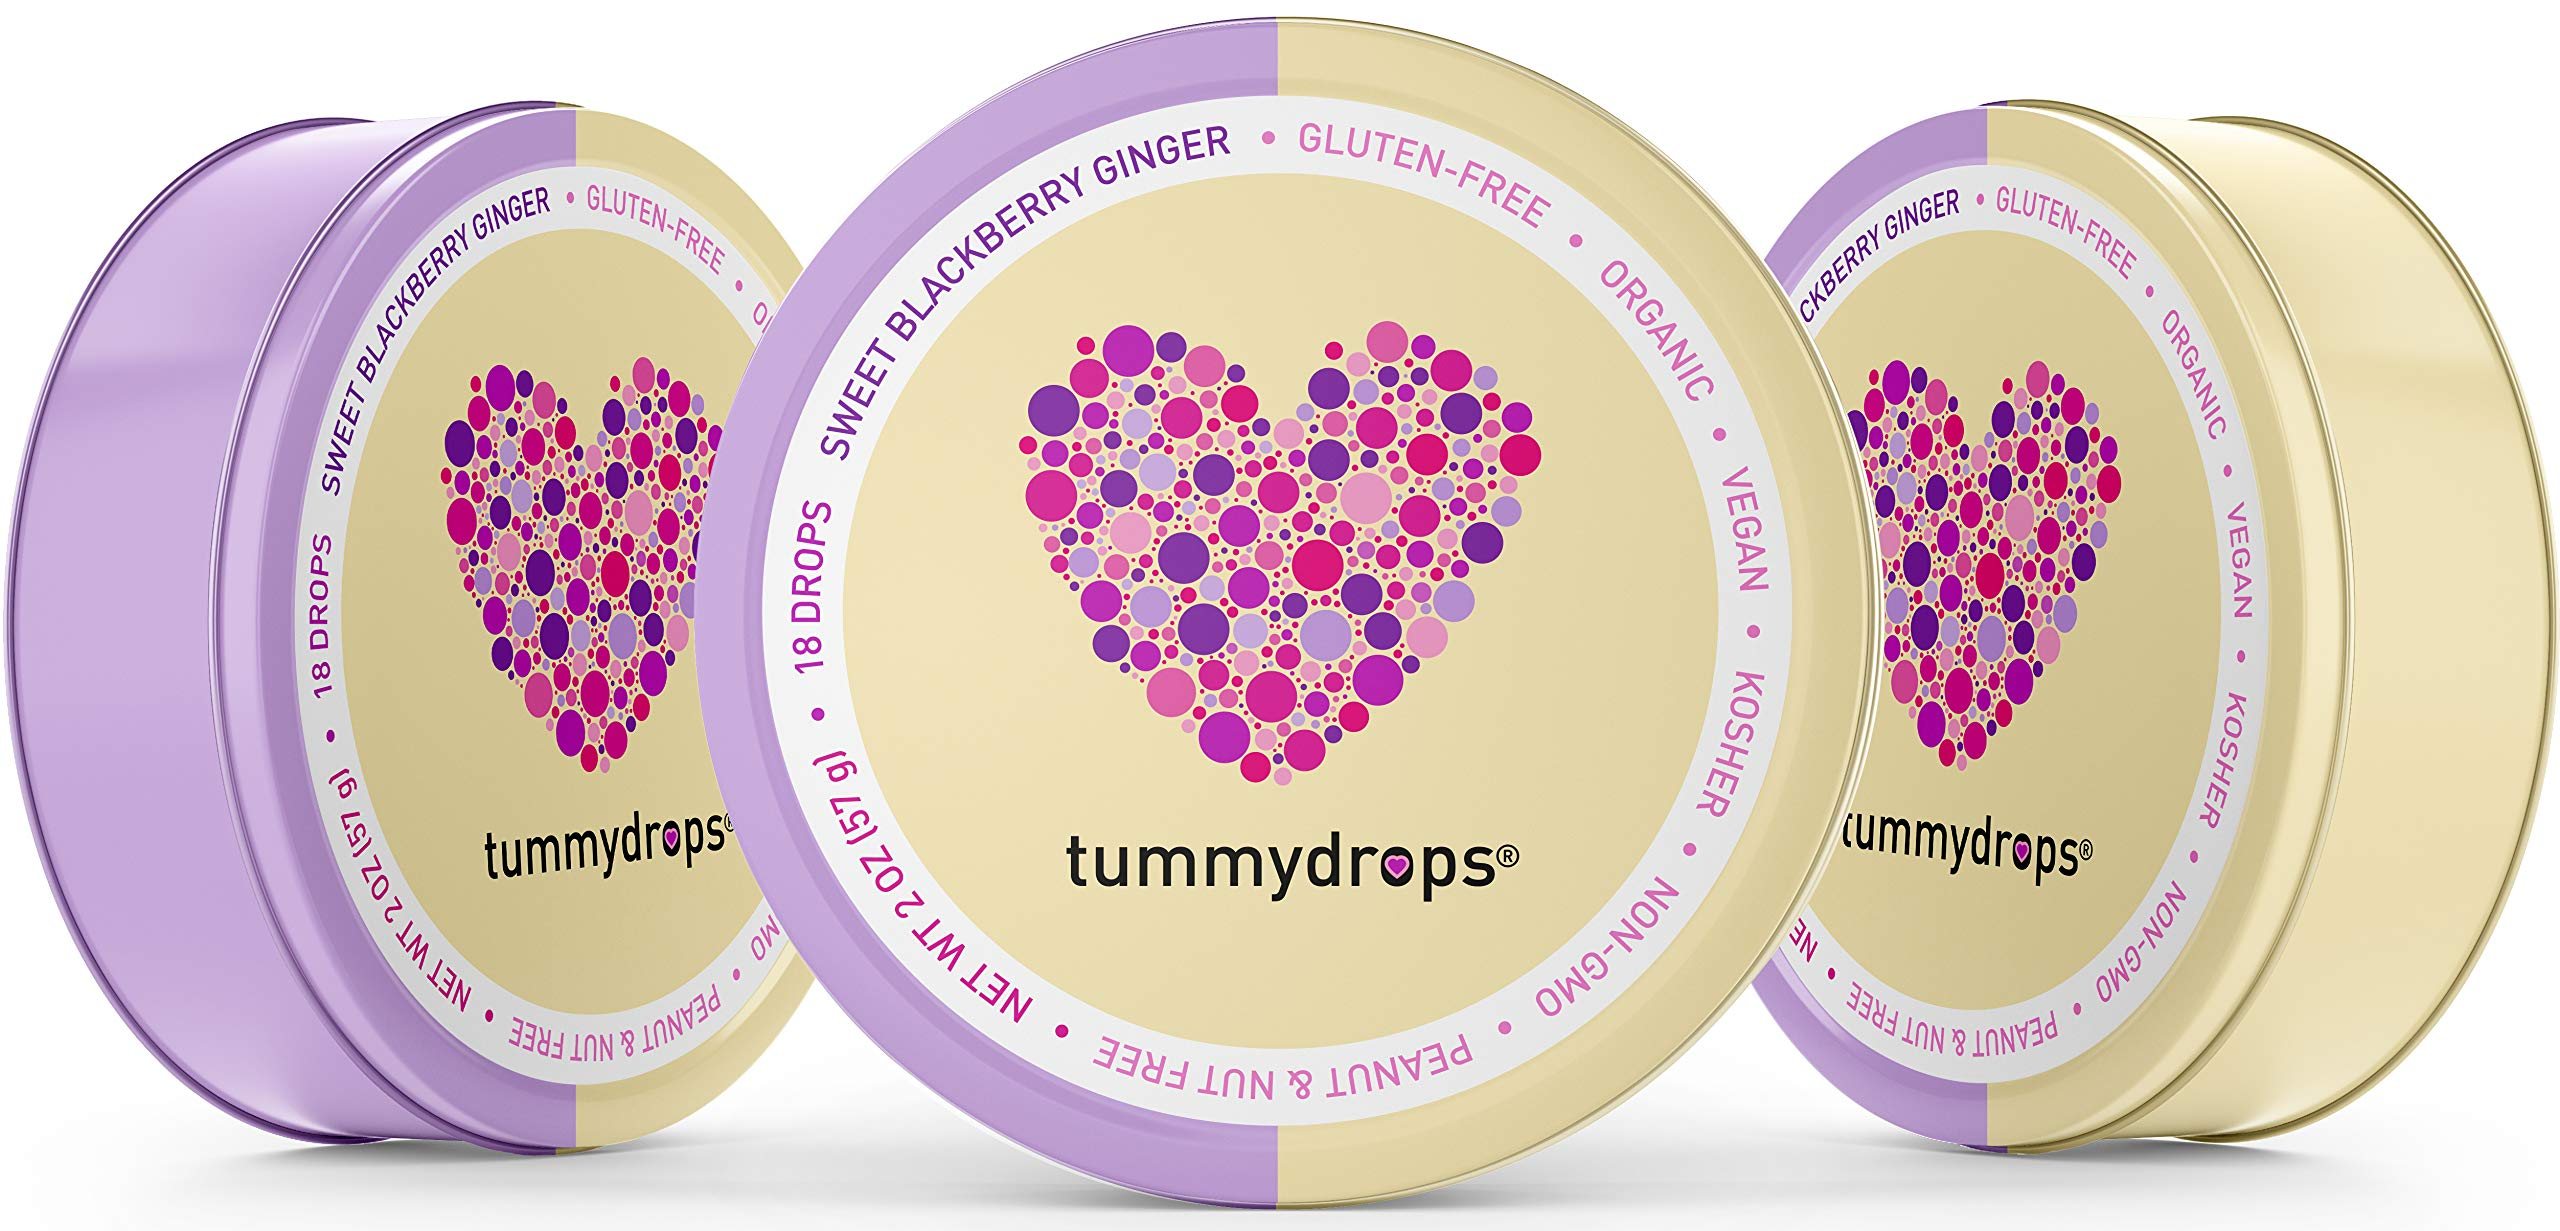 Organic Sweet BlackBerry Ginger Tummydrops (Pack of 3 Tins-54 Total Drops)